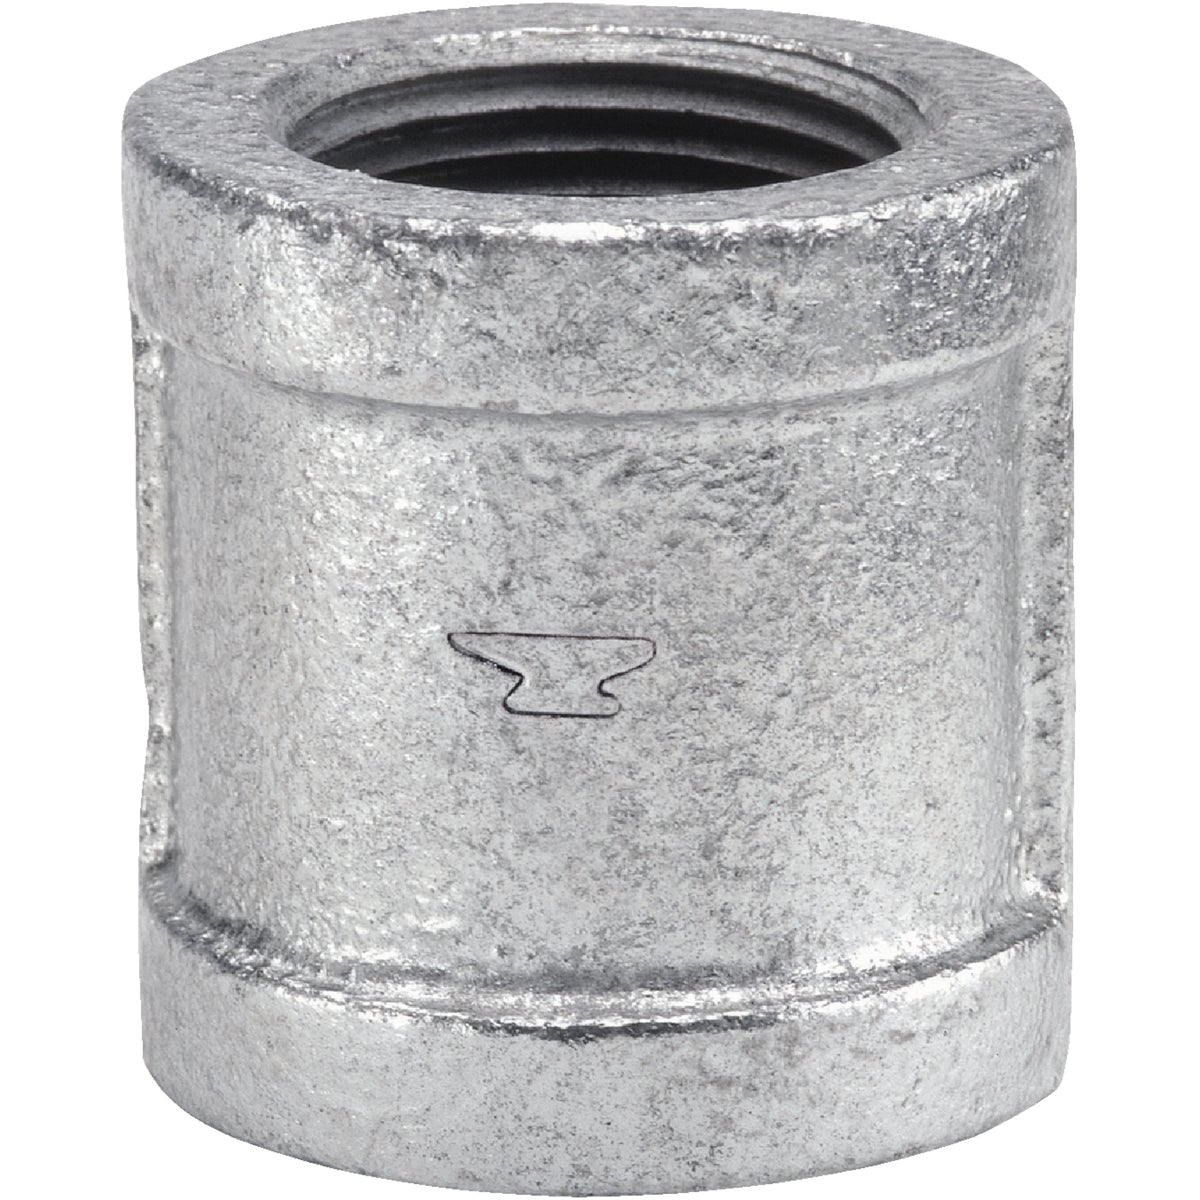 "1/2"" GALV COUPLING - 8700133559 by Anvil International"